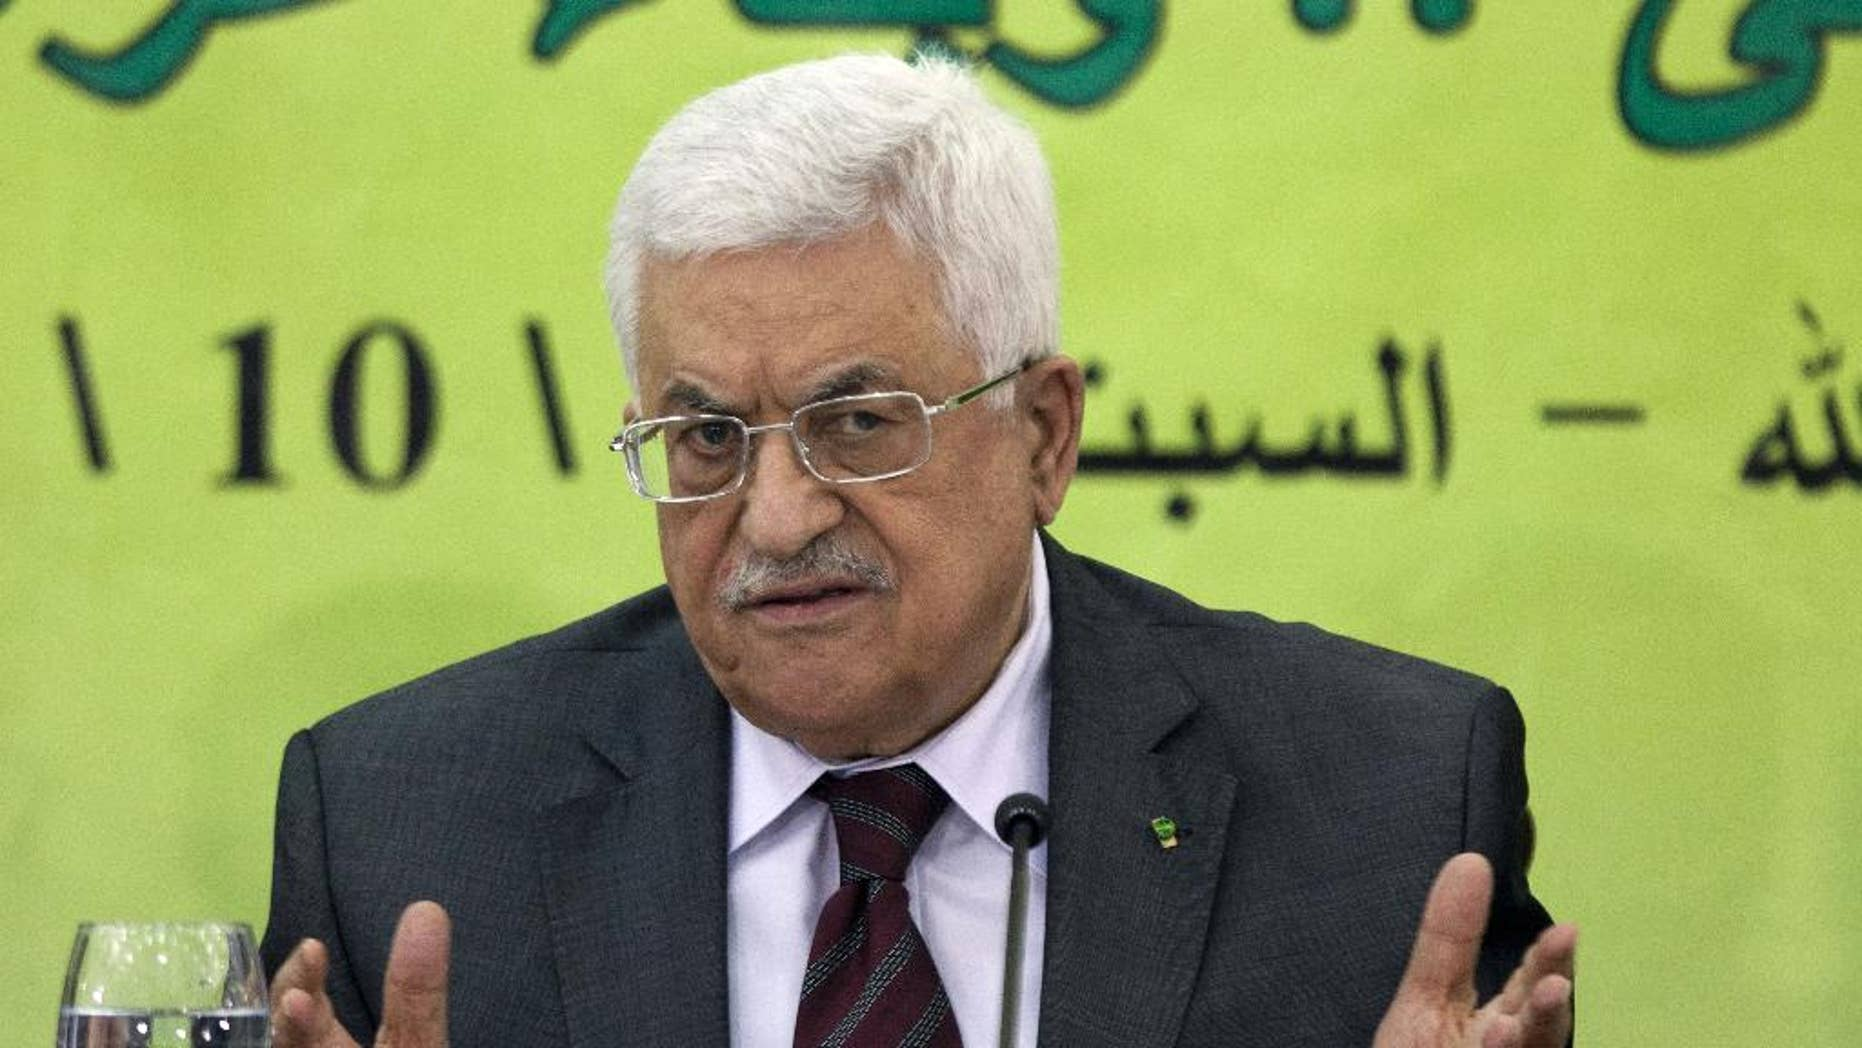 Palestinian President Mahmoud Abbas speaks during a meeting of the Fatah revolutionary council in the West Bank city of Ramallah, Saturday, Oct. 18, 2014. The Palestinian ambassador to the U.N. said Friday his government wants the U.N. Security Council to vote on a resolution before the end of the year that would set November 2016 as the deadline for Israeli troops to withdraw from all Palestinian territories. (AP Photo/Majdi Mohammed)